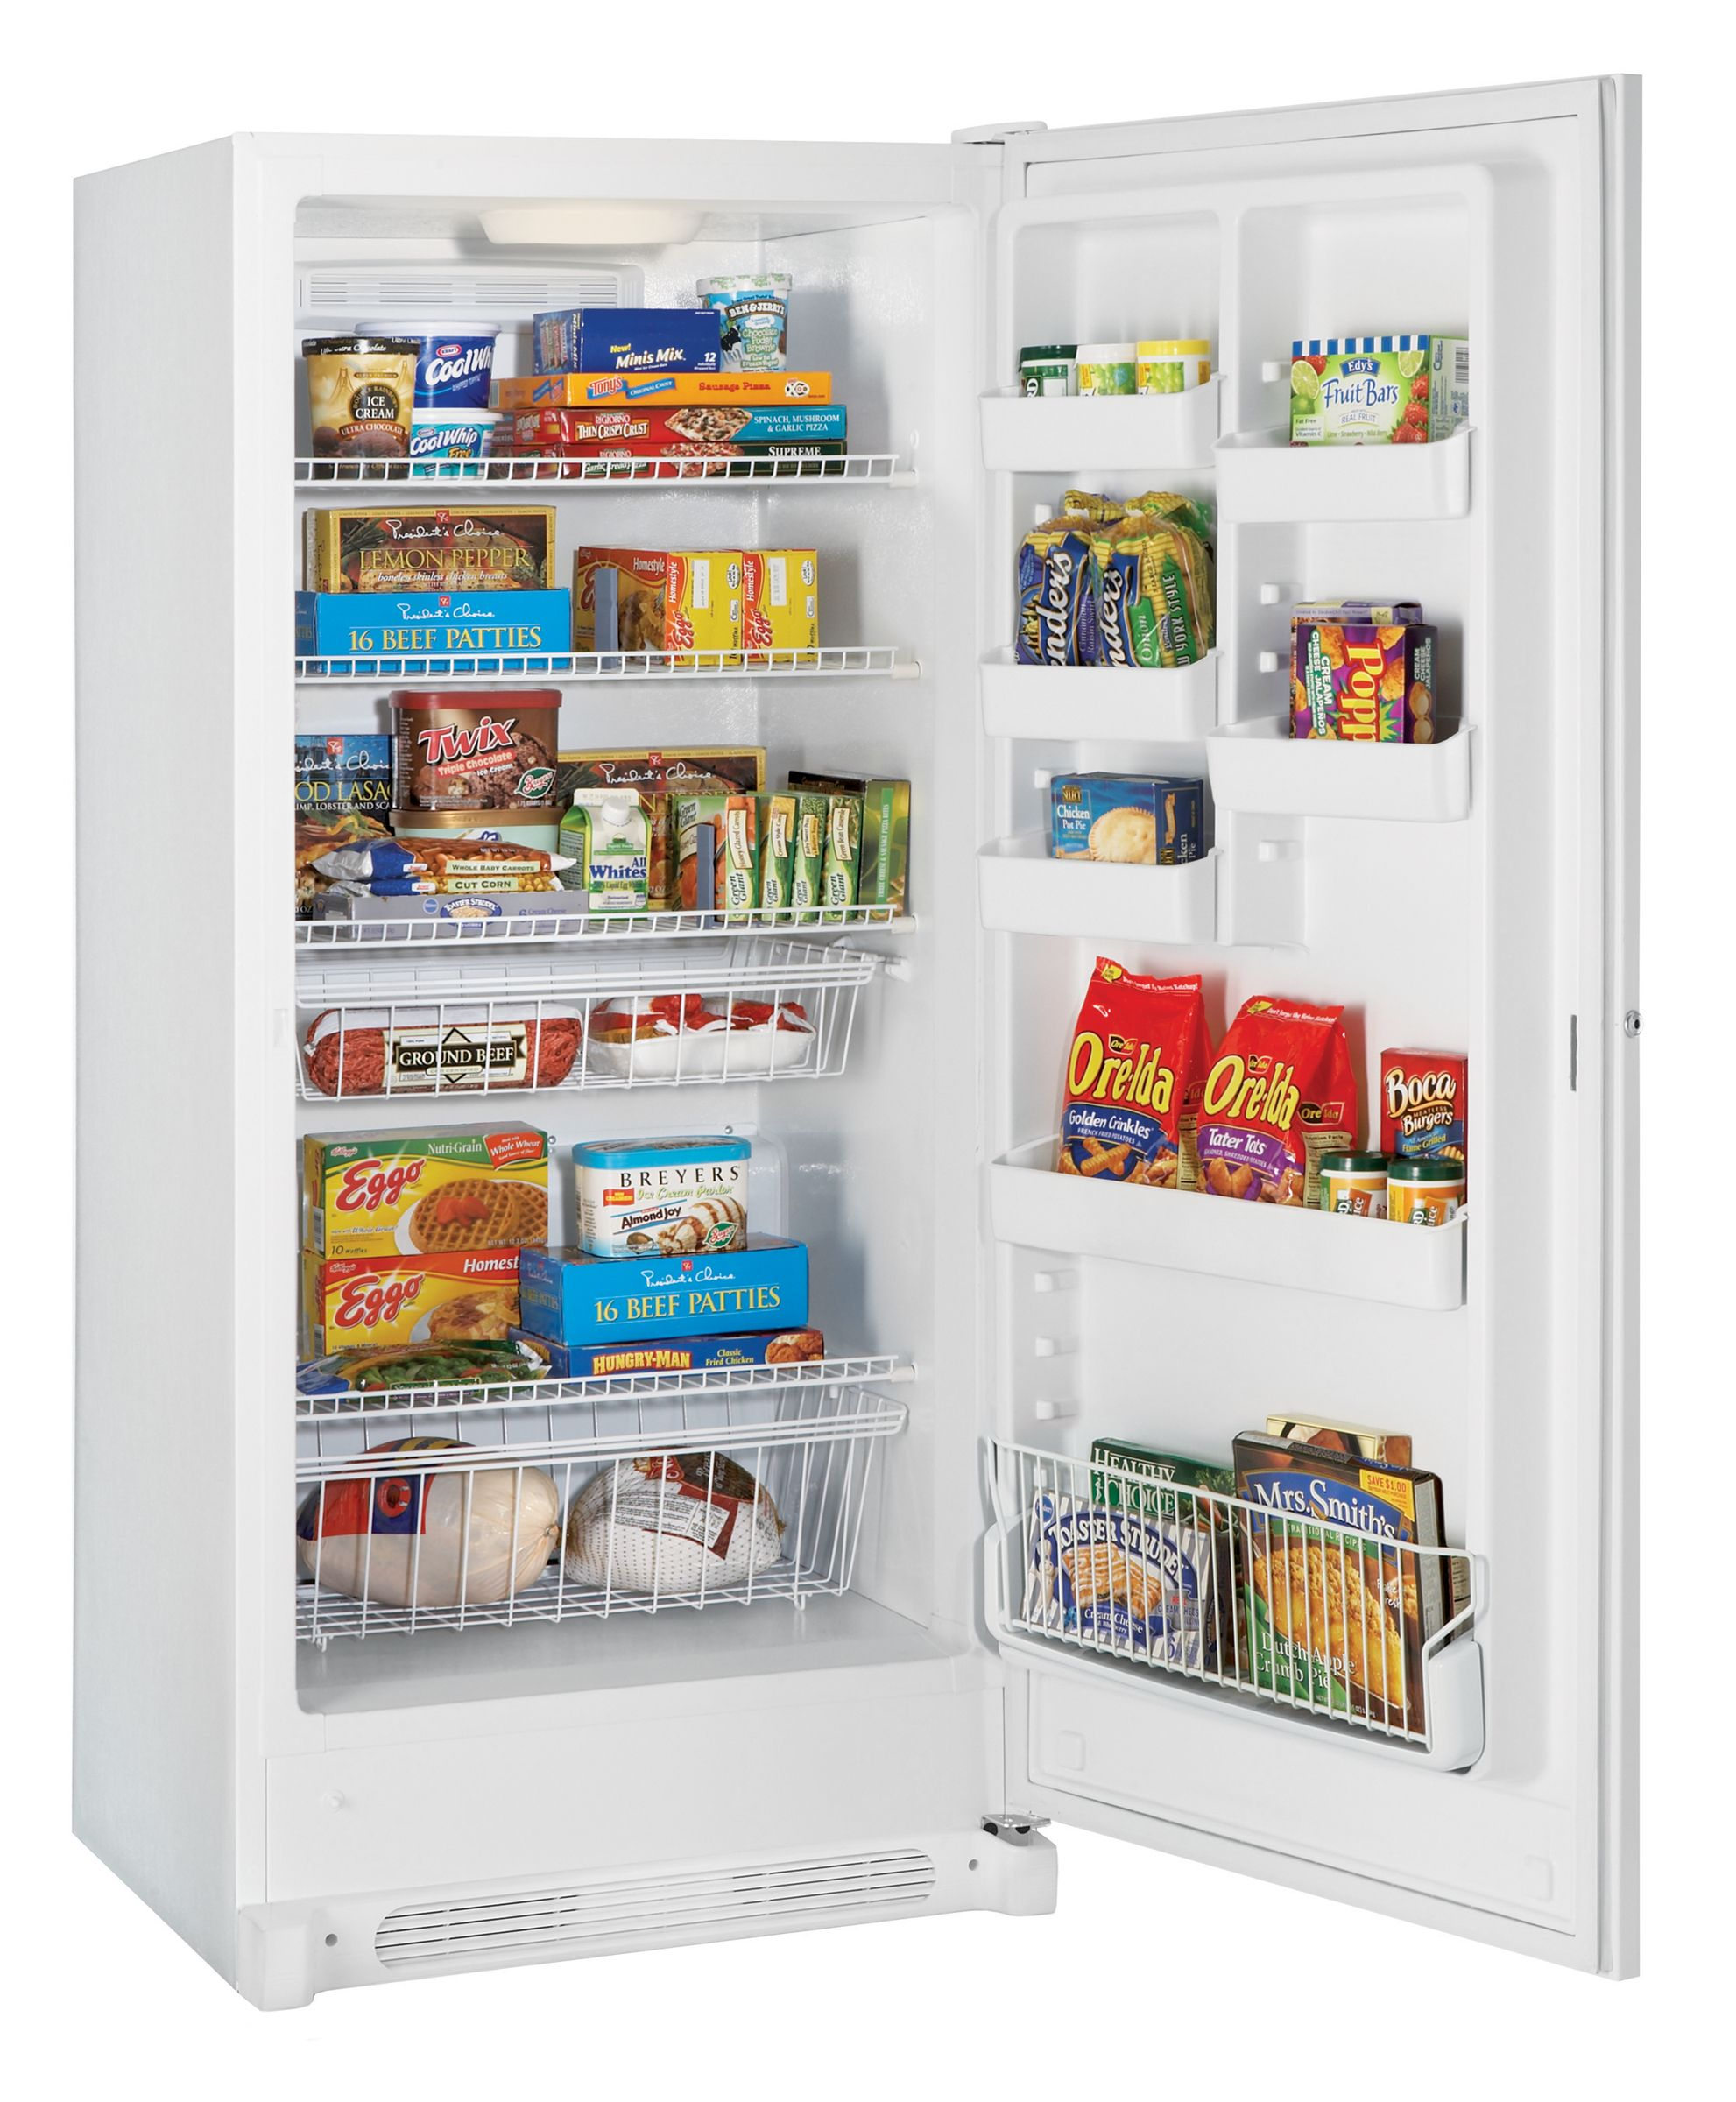 Frigidaire 20.6 cu. ft. Upright Freezer